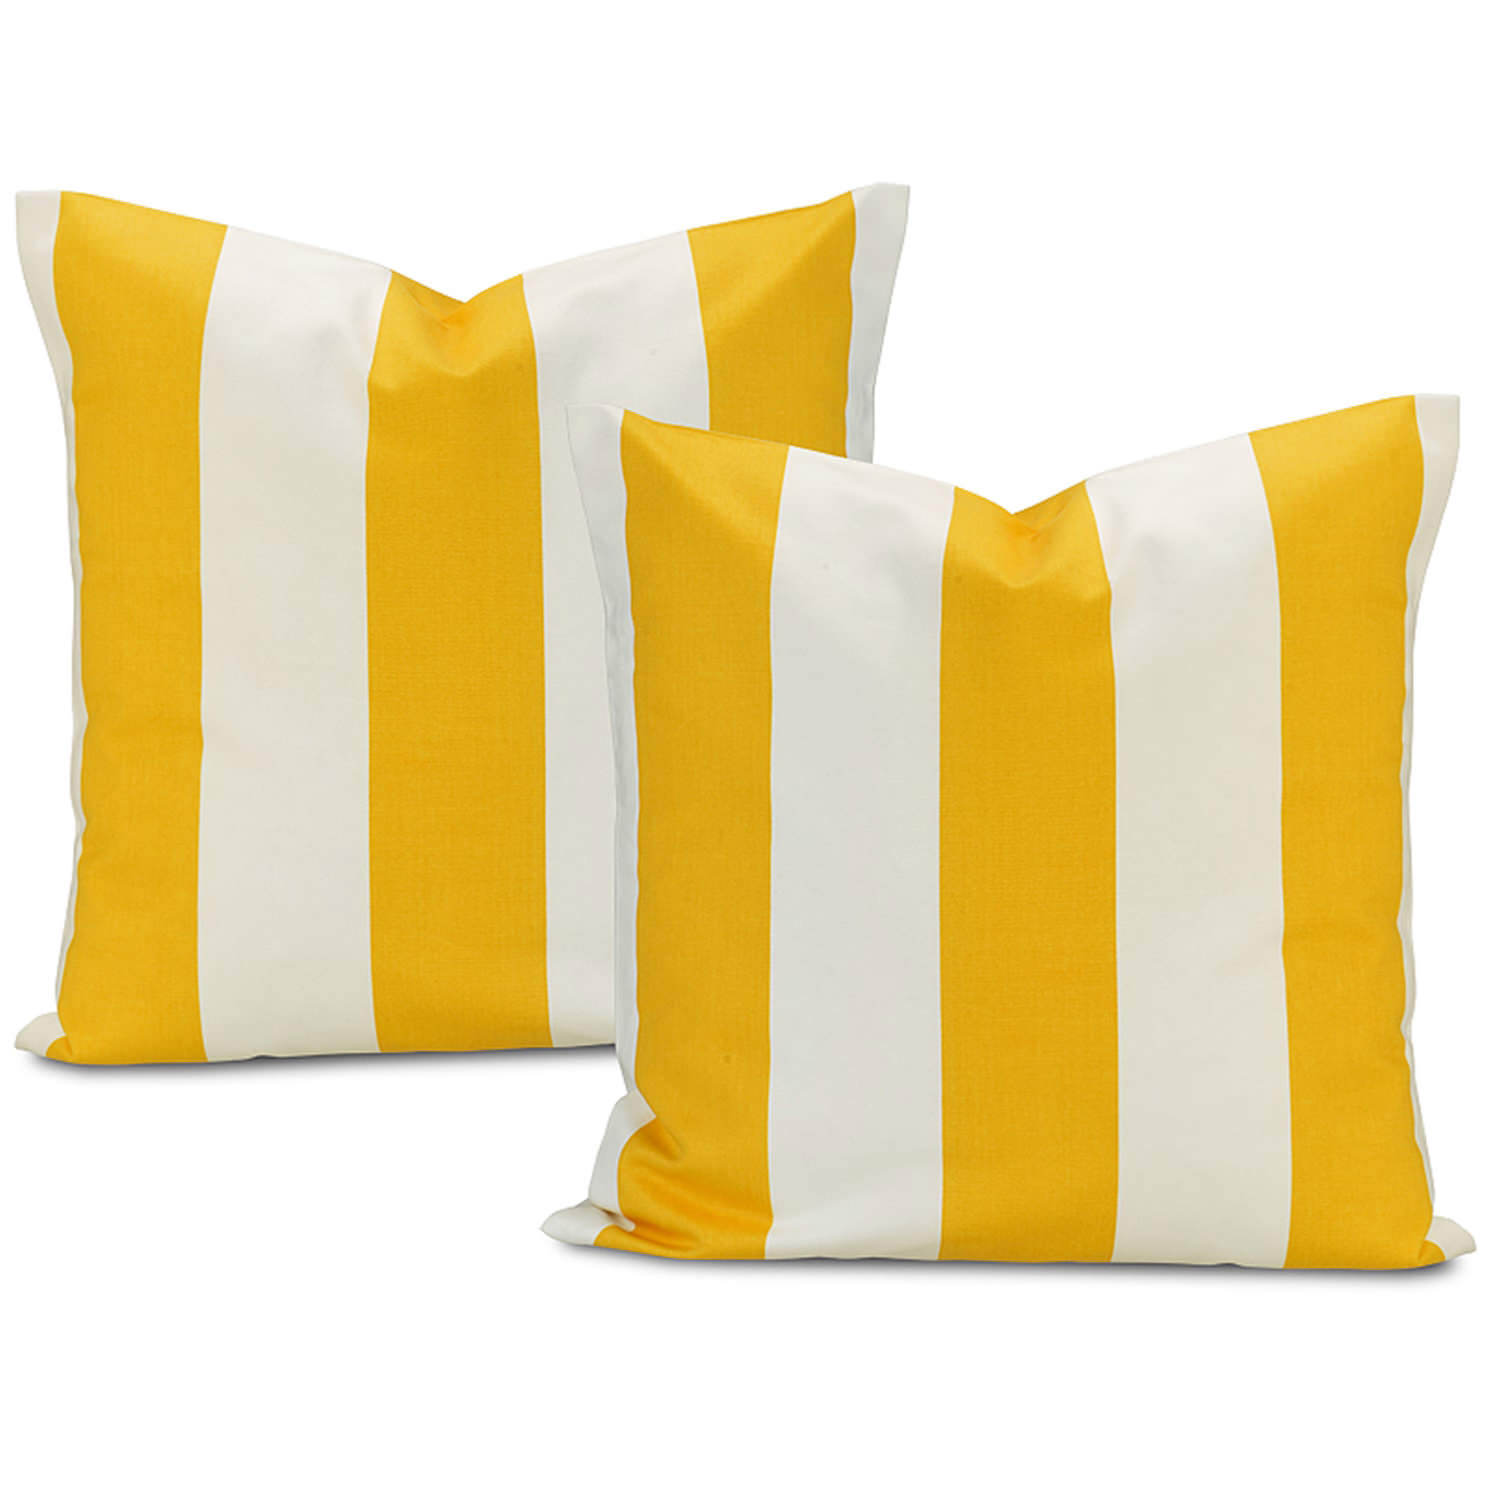 Cabana Yellow Printed Cotton Cushion Cover (Pair)